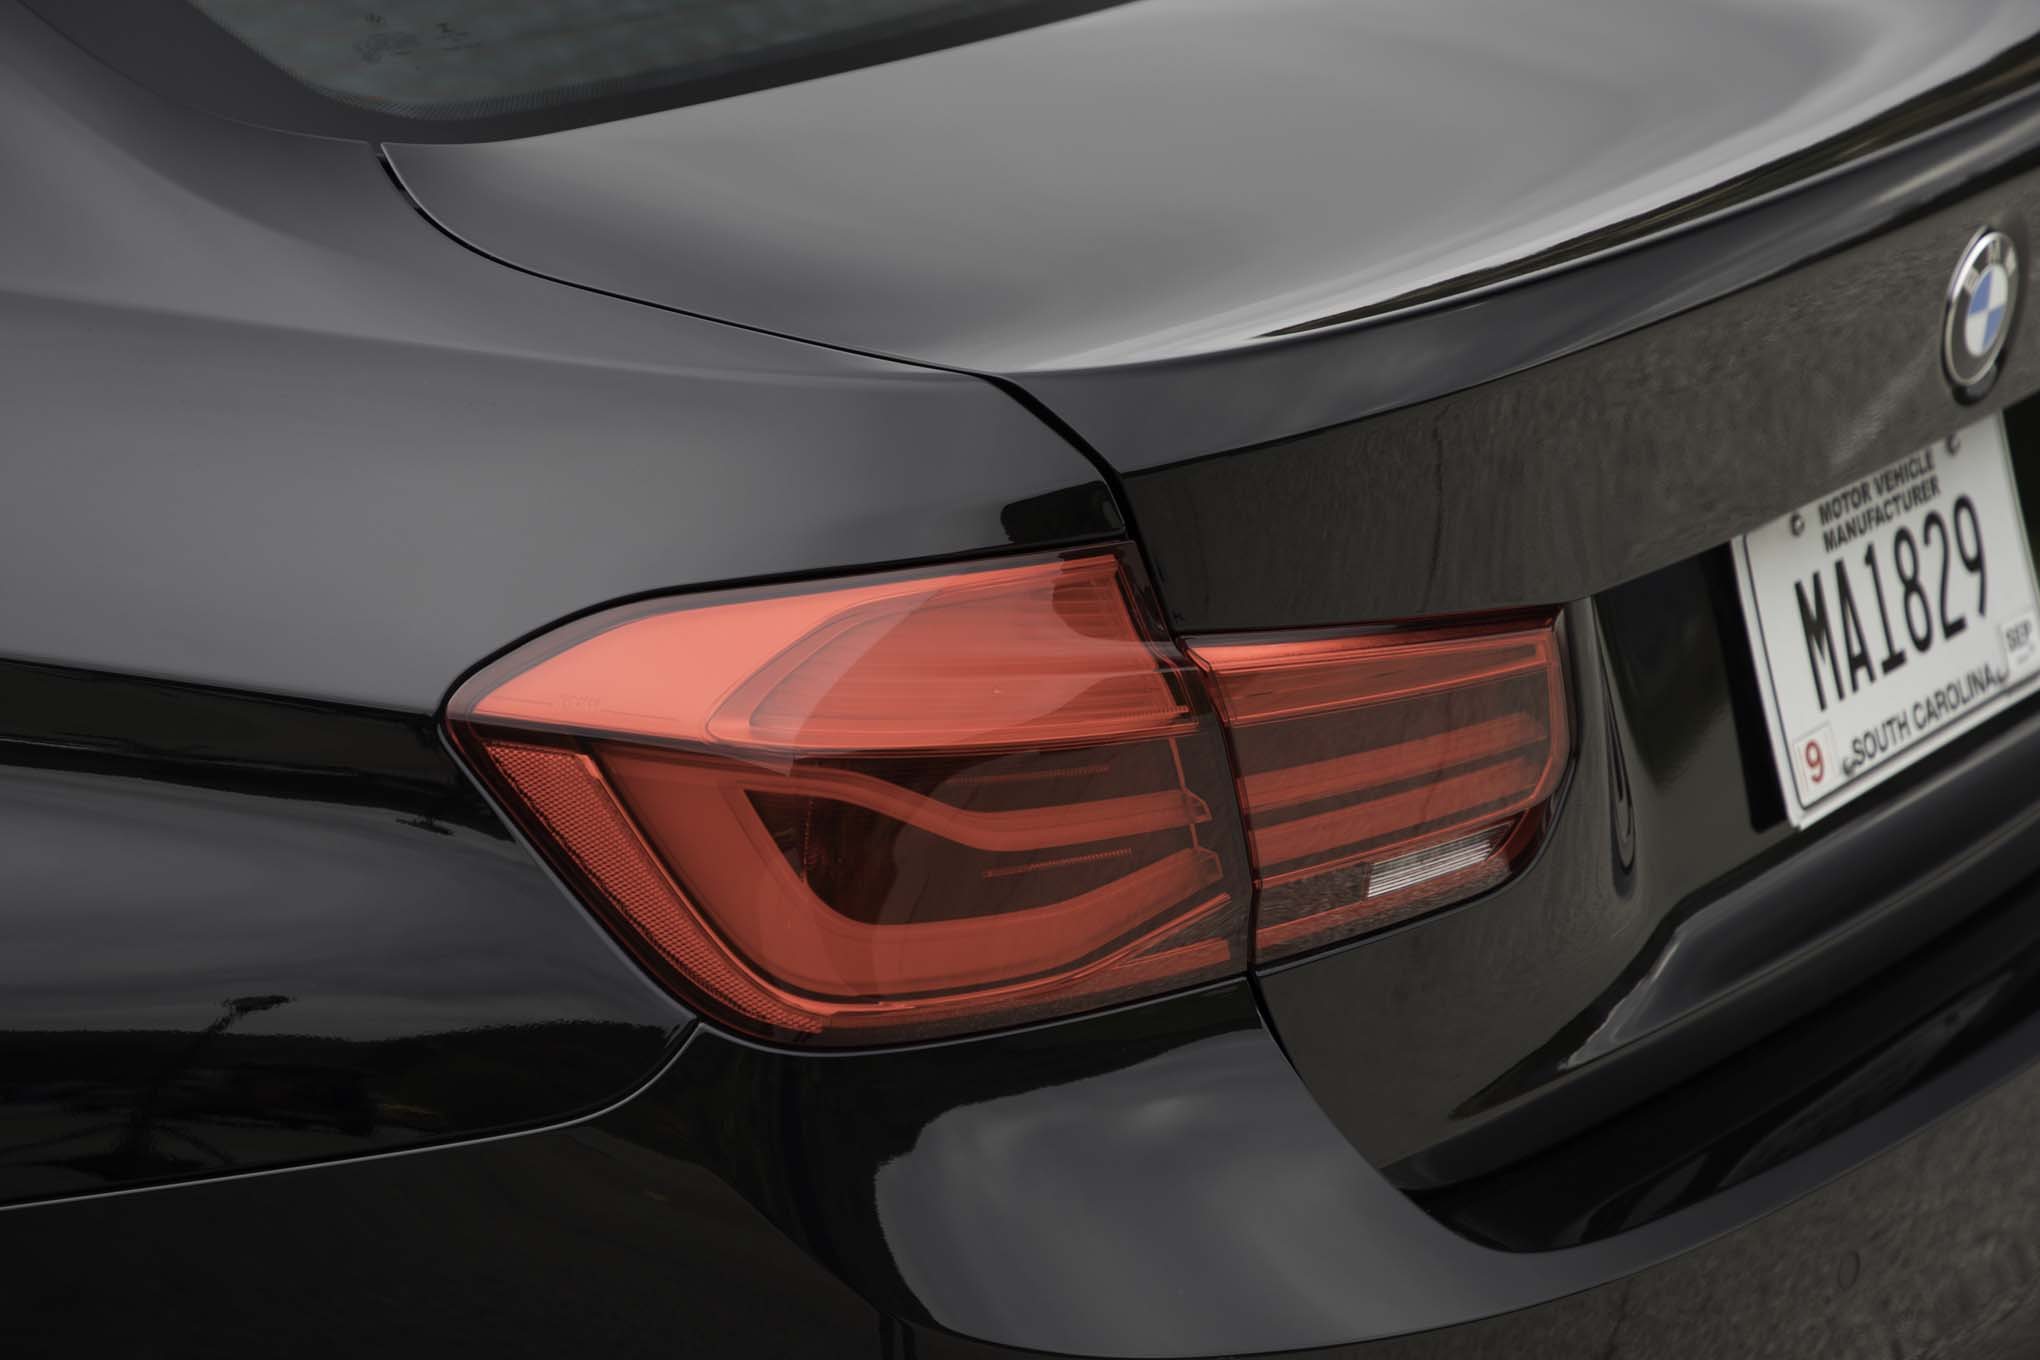 2017 BMW 330i Sedan Exterior View Taillight (View 42 of 59)